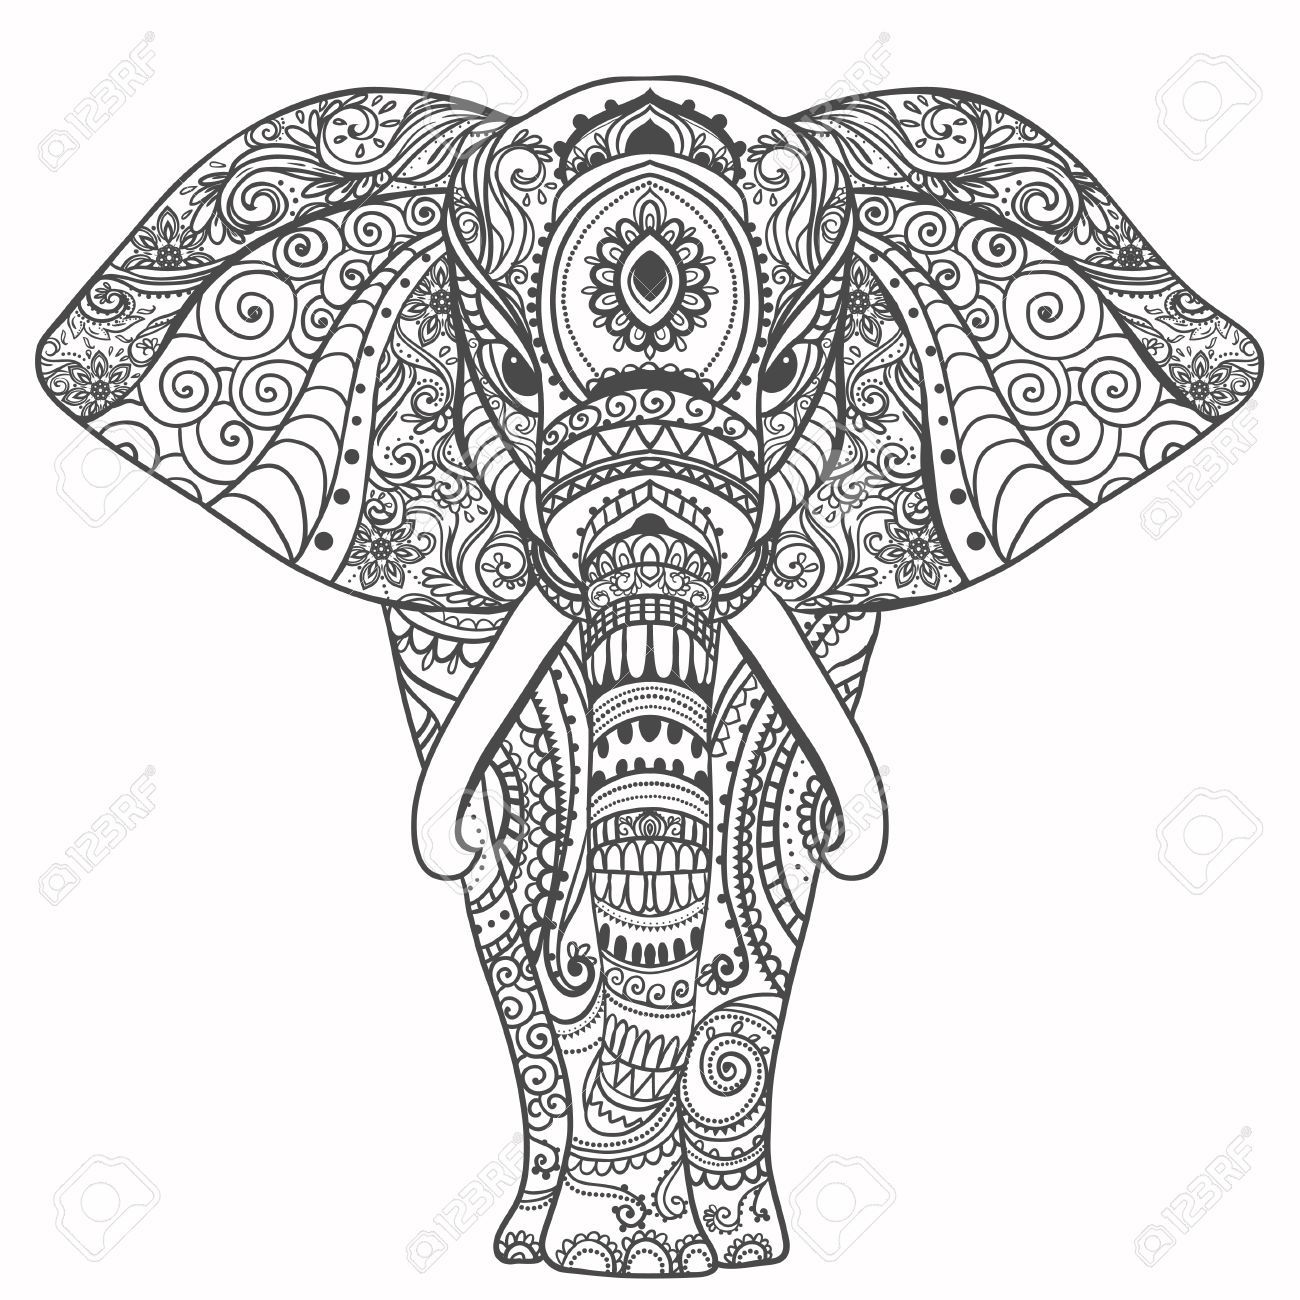 Zentangle Elefant Vorlage Stock Photo Mandalas Zentangle Zeichenvorlagen Elefant